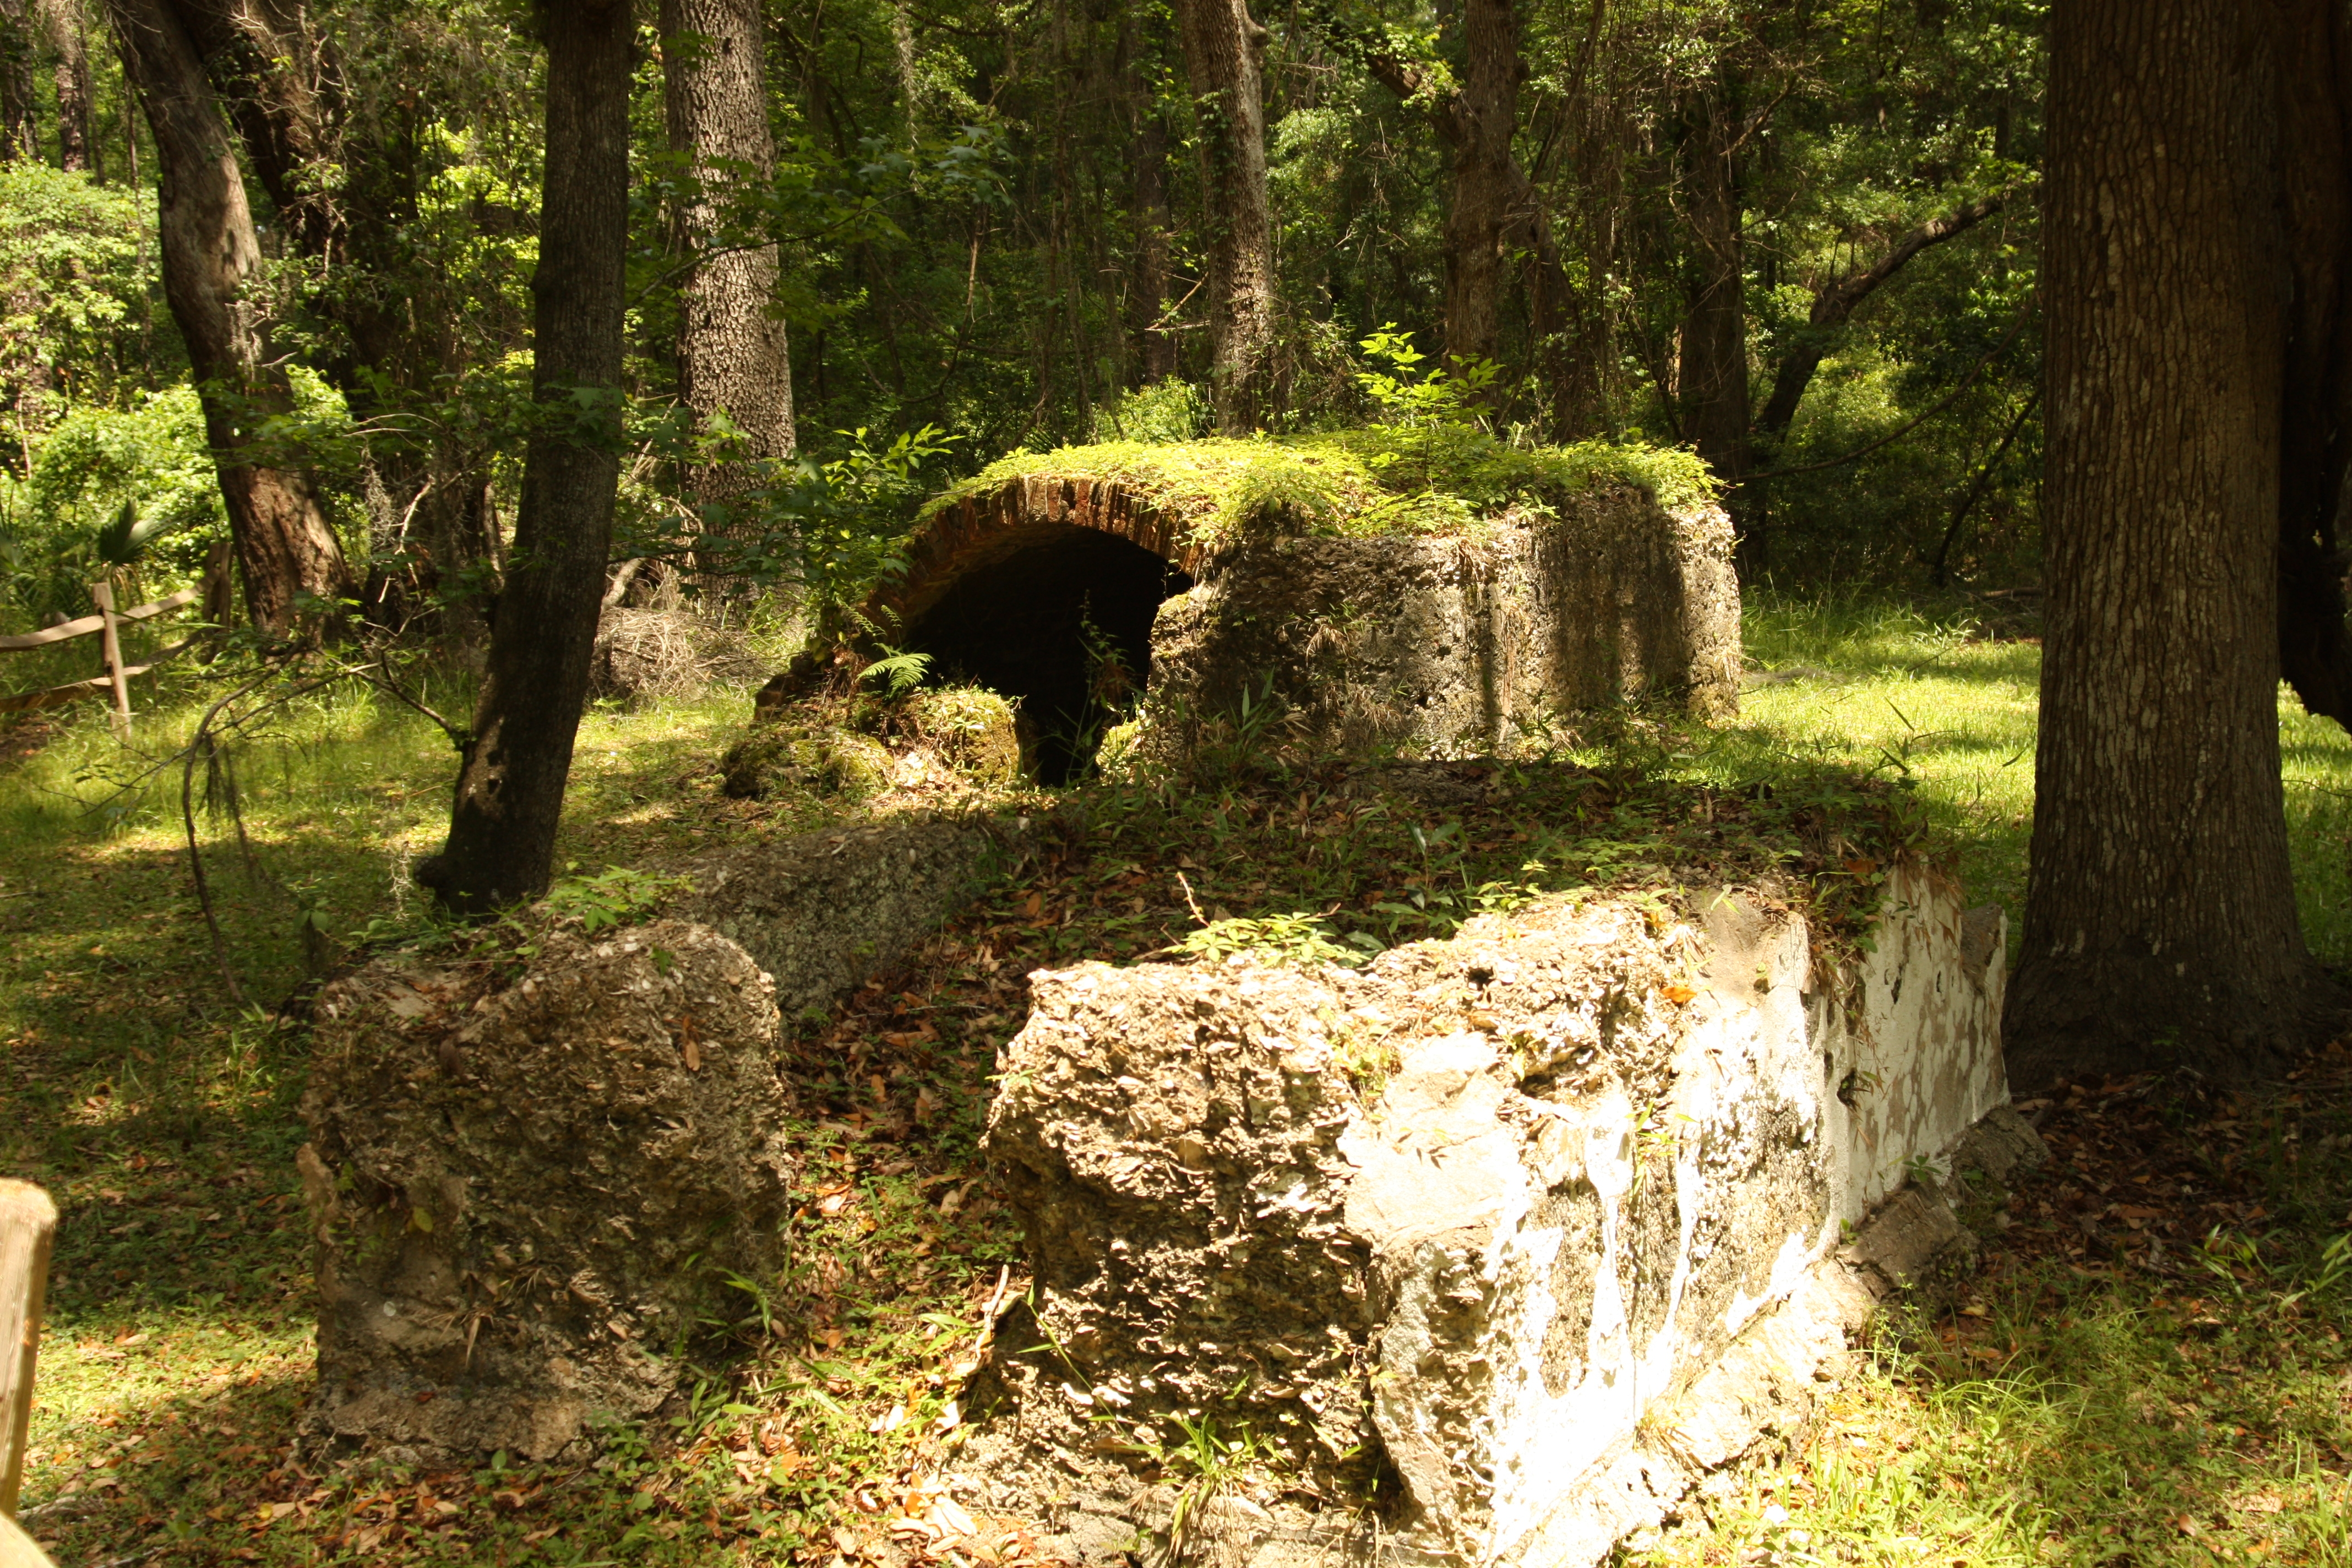 Frederica - Old Burial Ground Stone Tombs